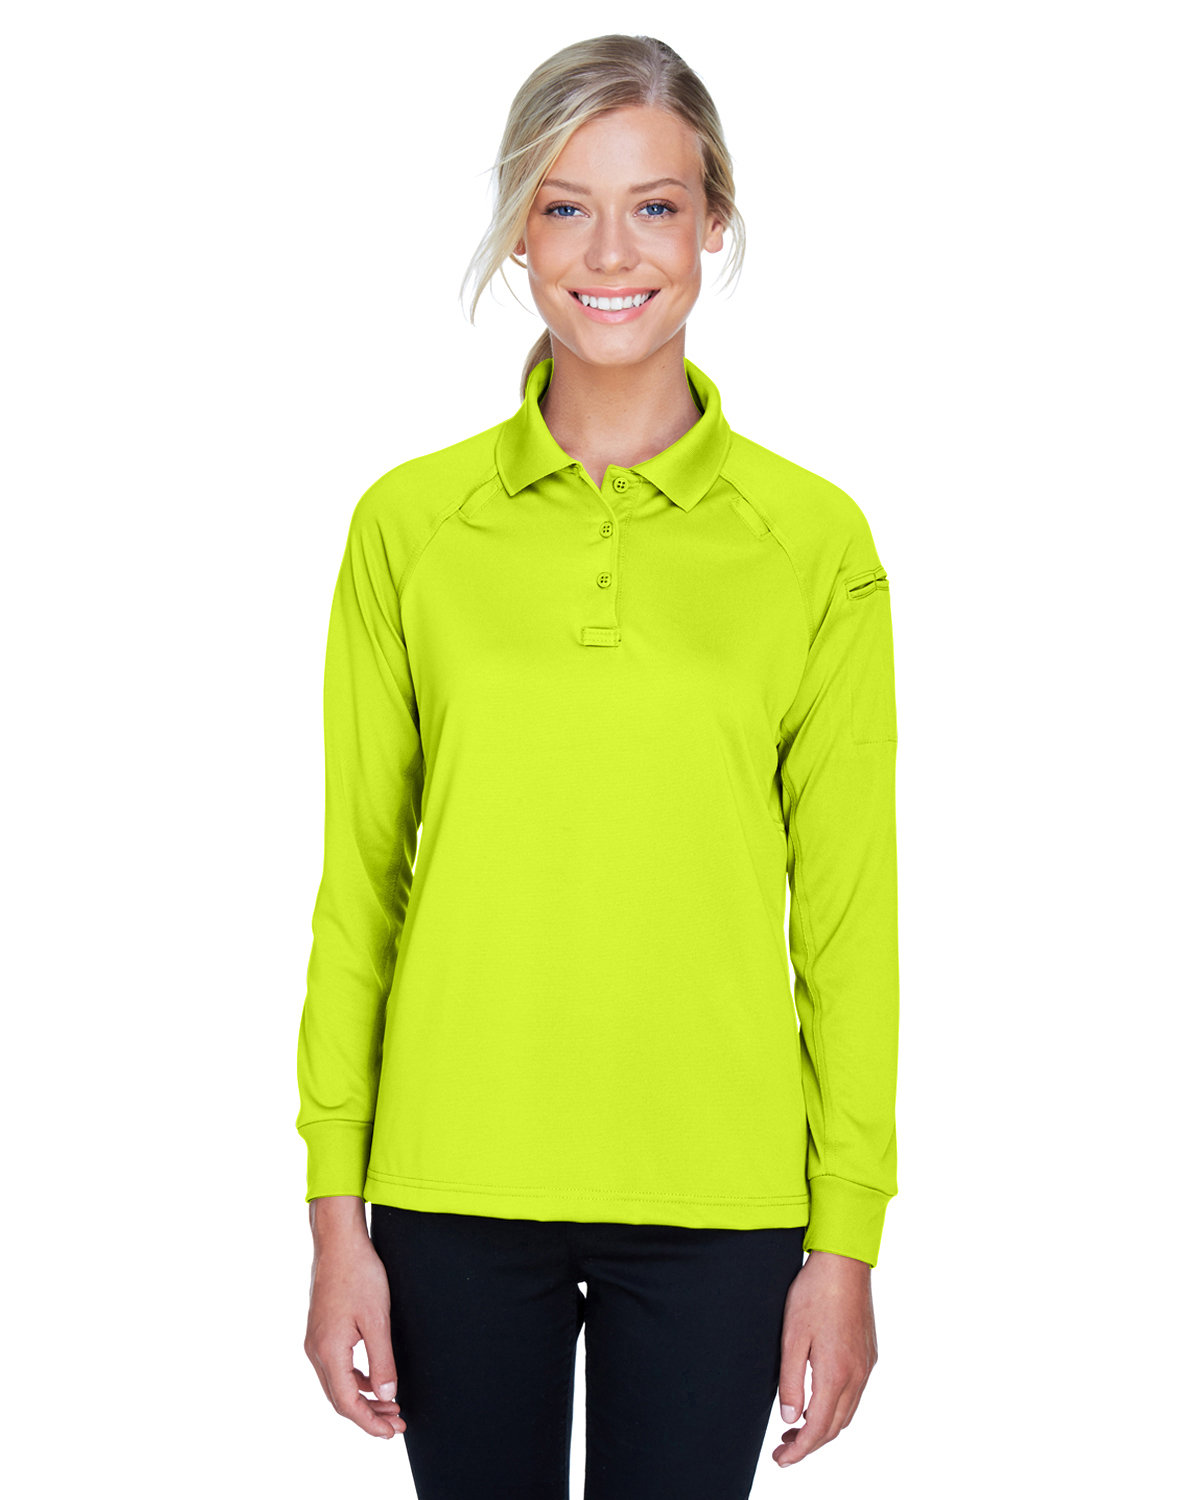 Harriton Ladies' Advantage Snag Protection Plus Long-Sleeve Tactical Polo SAFETY YELLOW